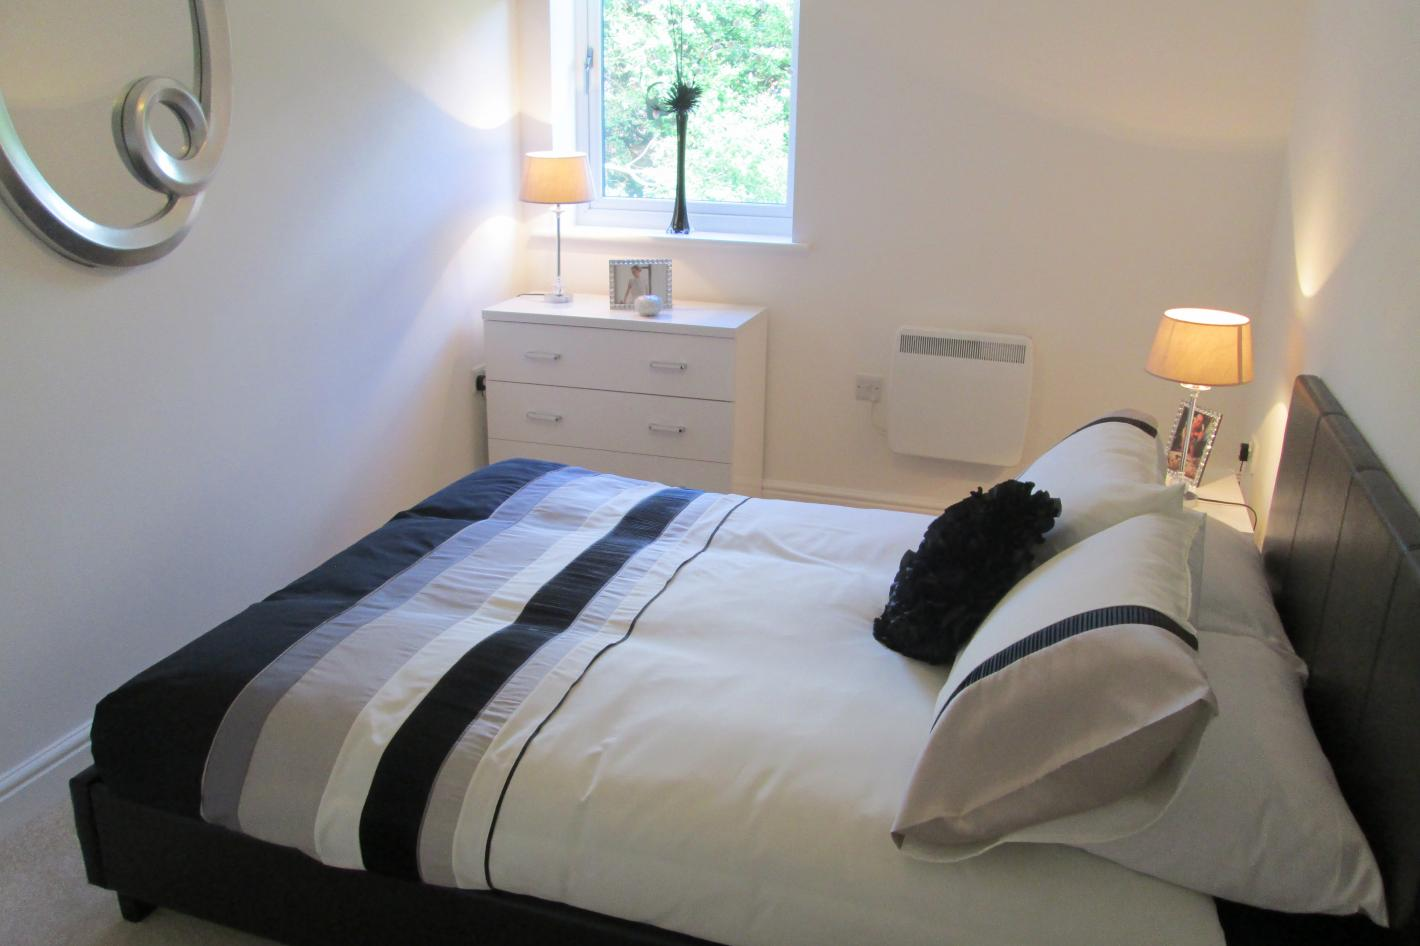 double bedroom, white and purple bedding, single window on wall